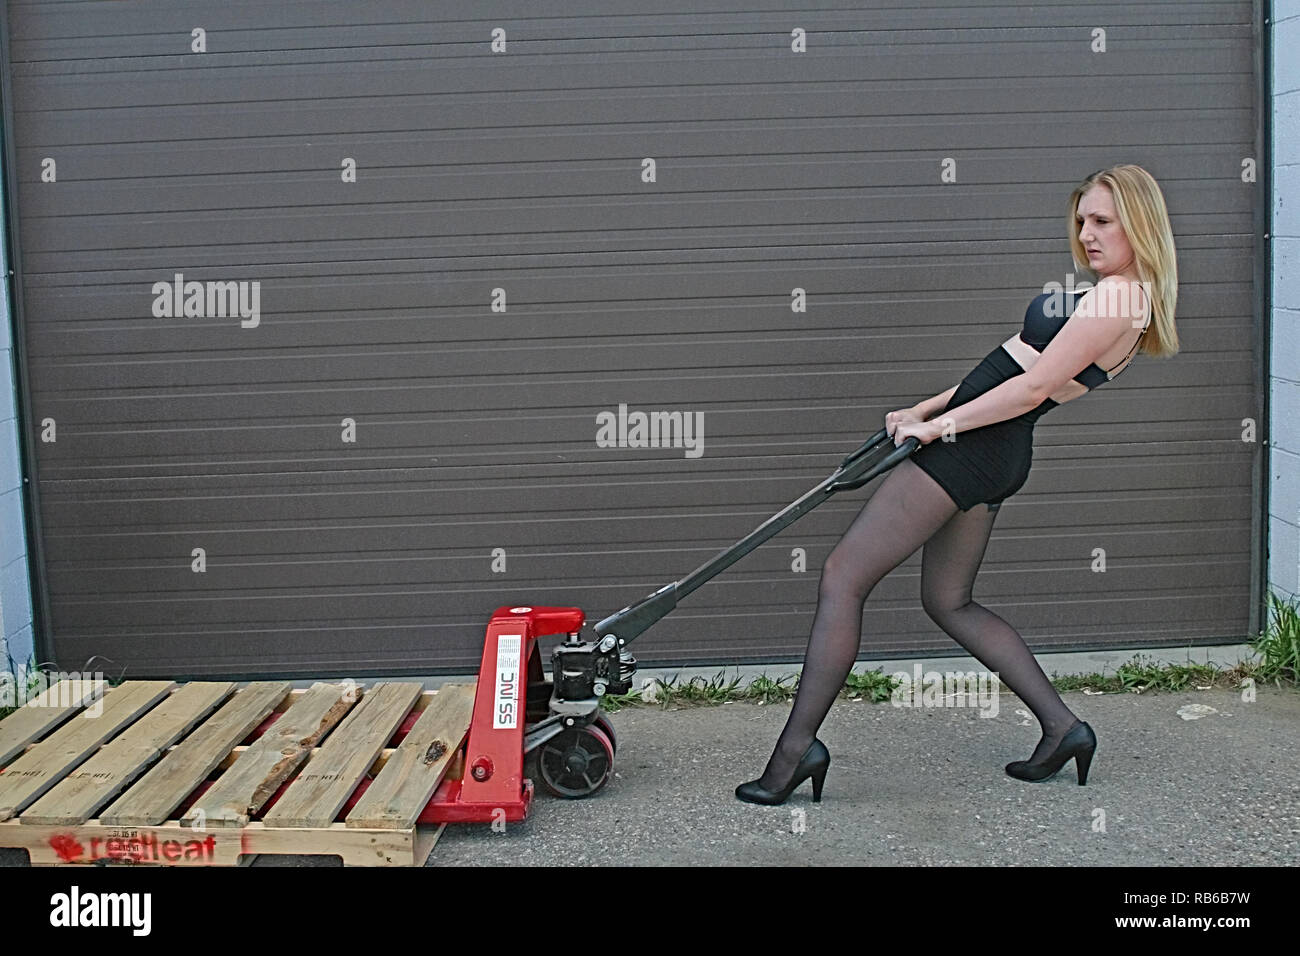 Blonde  Woman  wearing nylon stocking, high heels and short pushing a wheel barrow - Stock Image